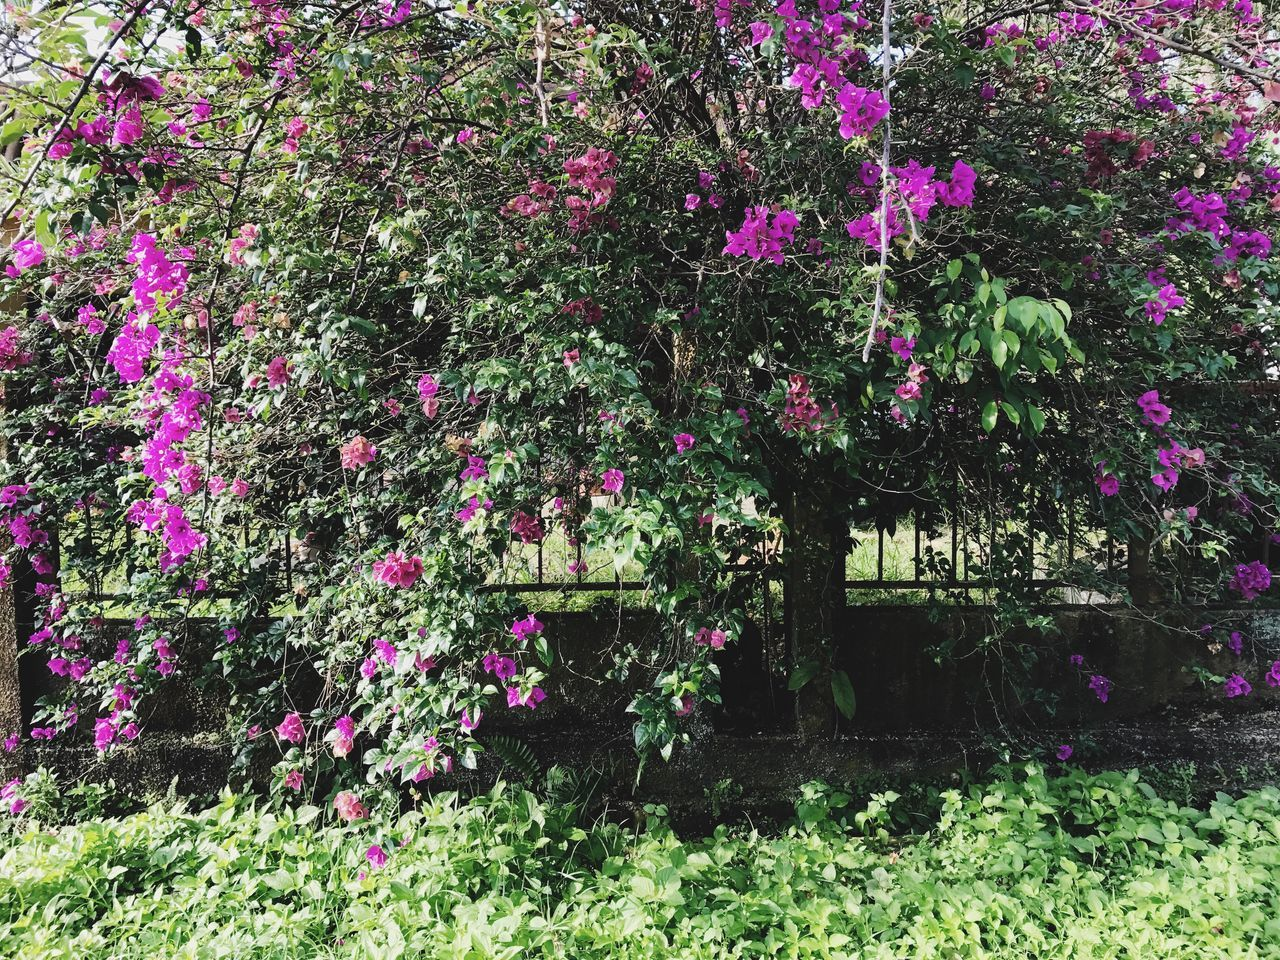 Flower Growth Nature Beauty In Nature Purple Fragility Plant Freshness No People Blooming Outdoors Day My Garden